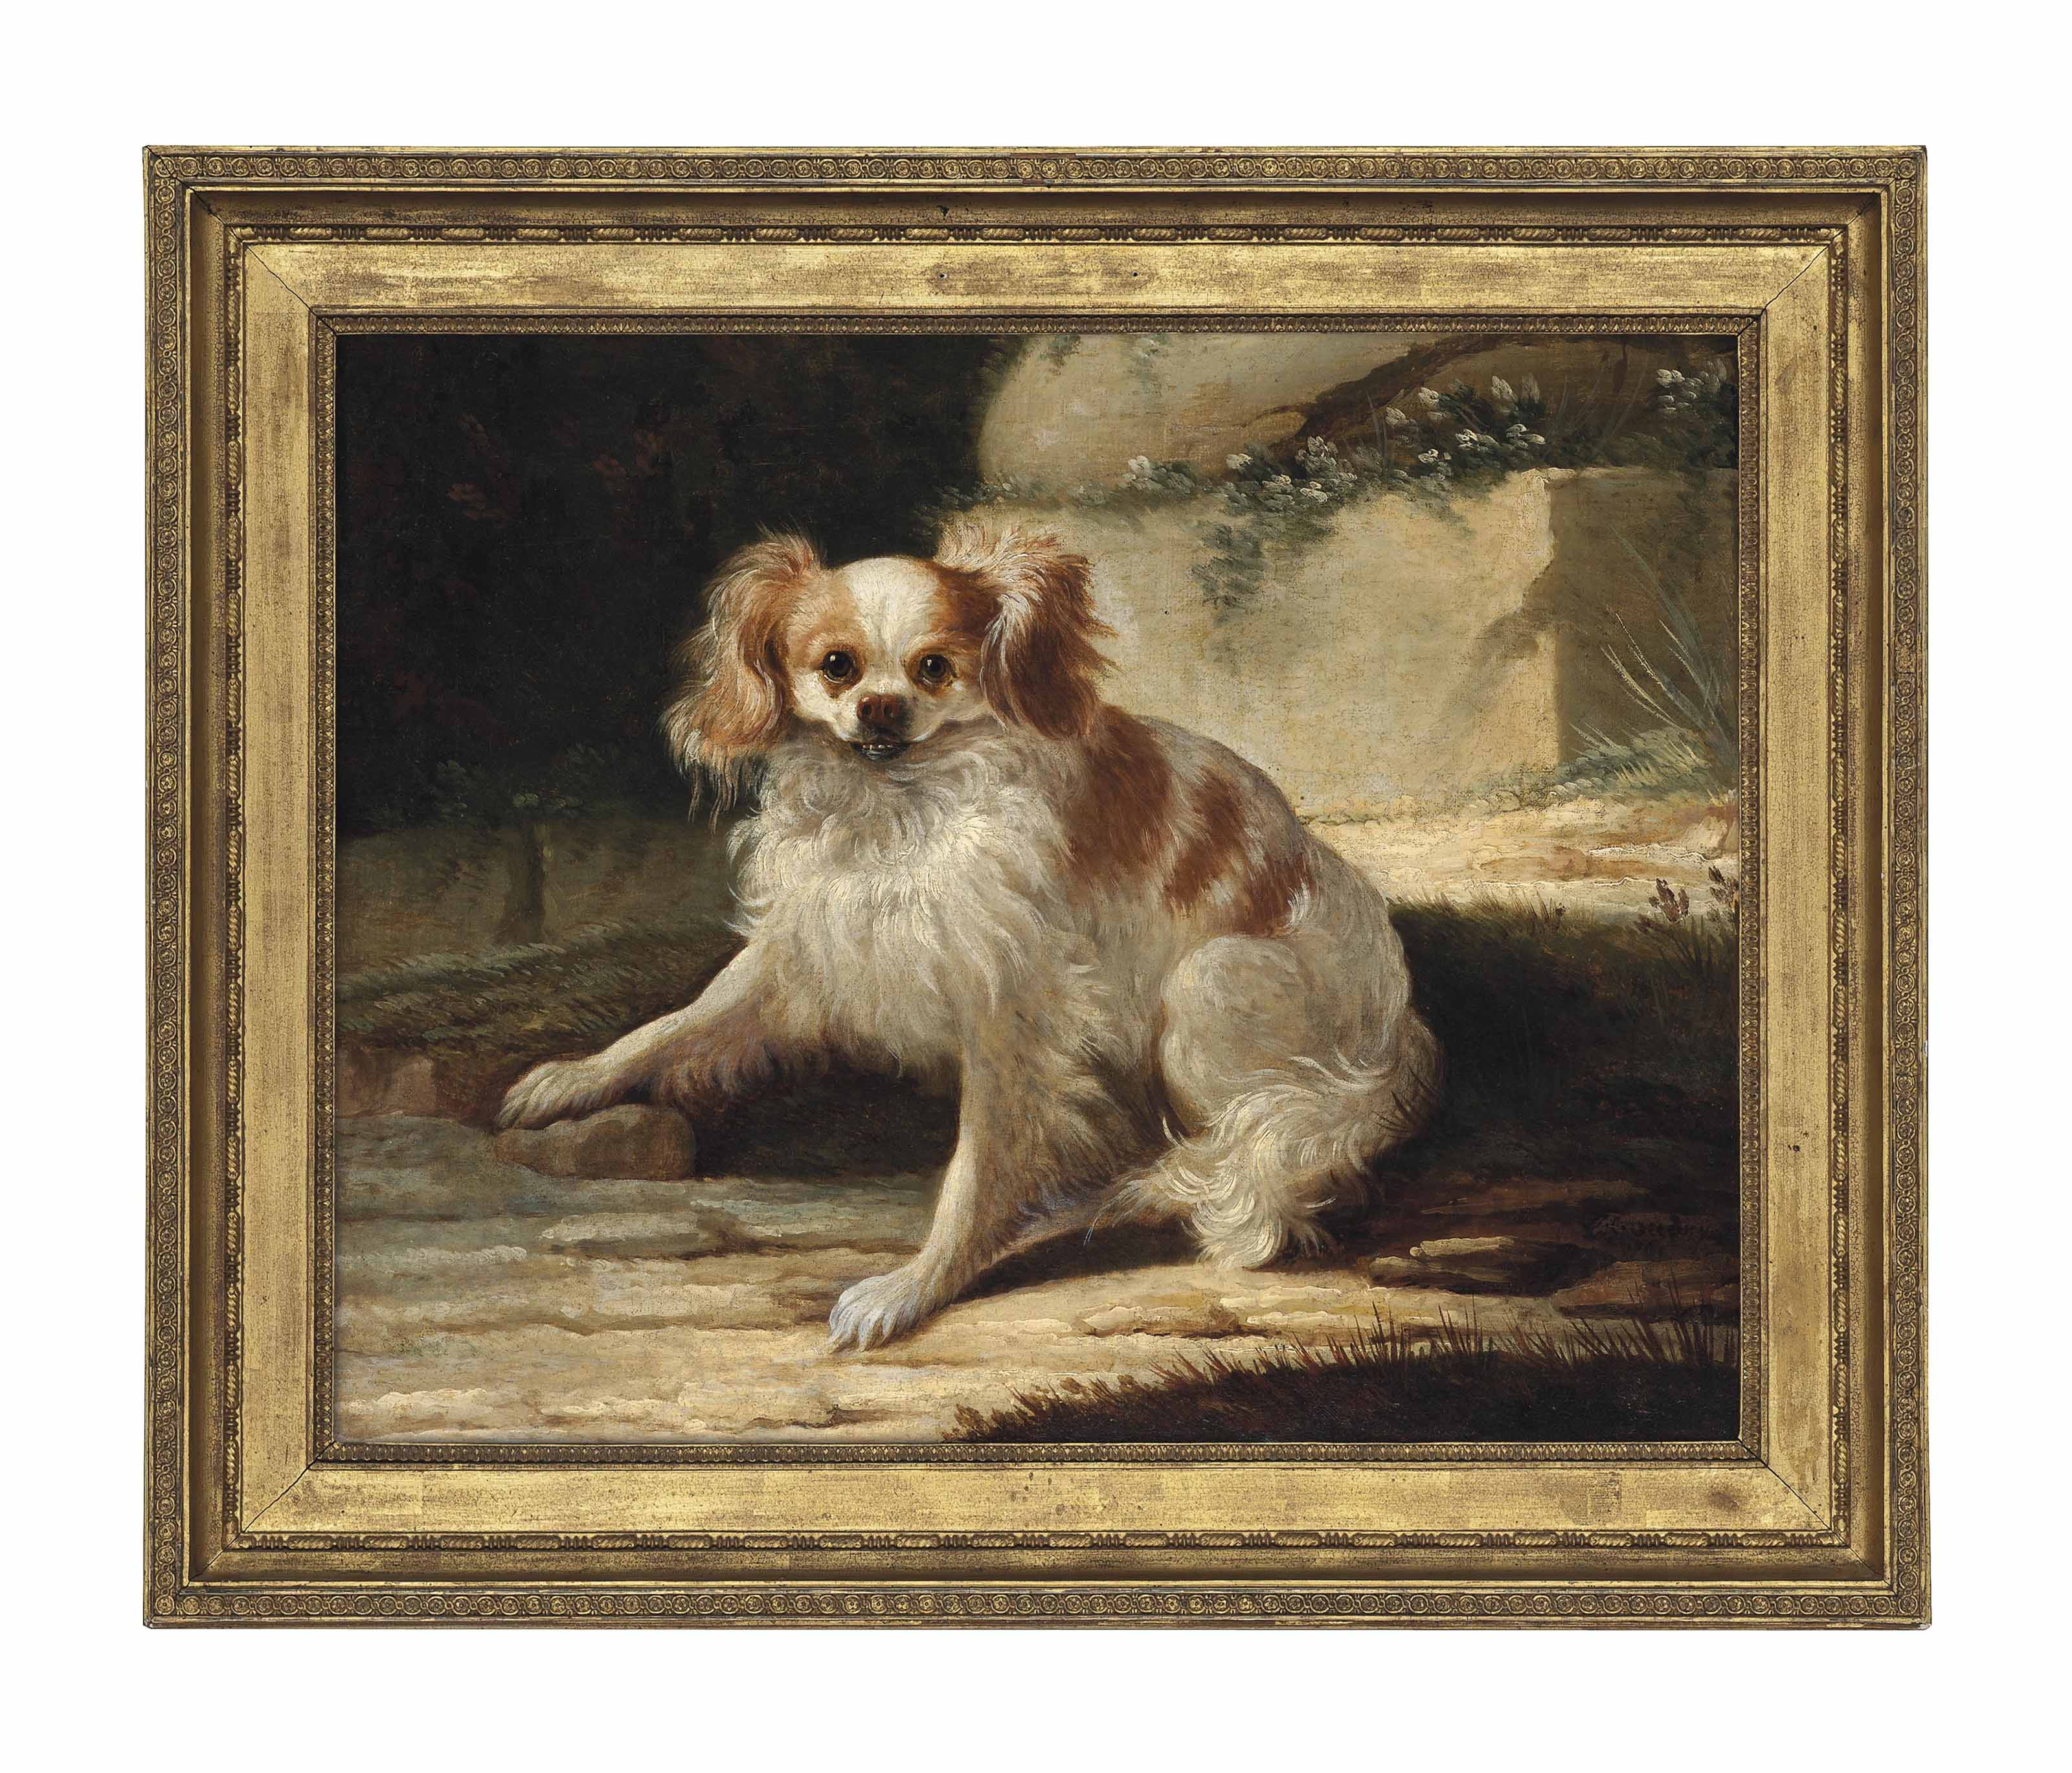 A brown and white Spaniel in a landscape